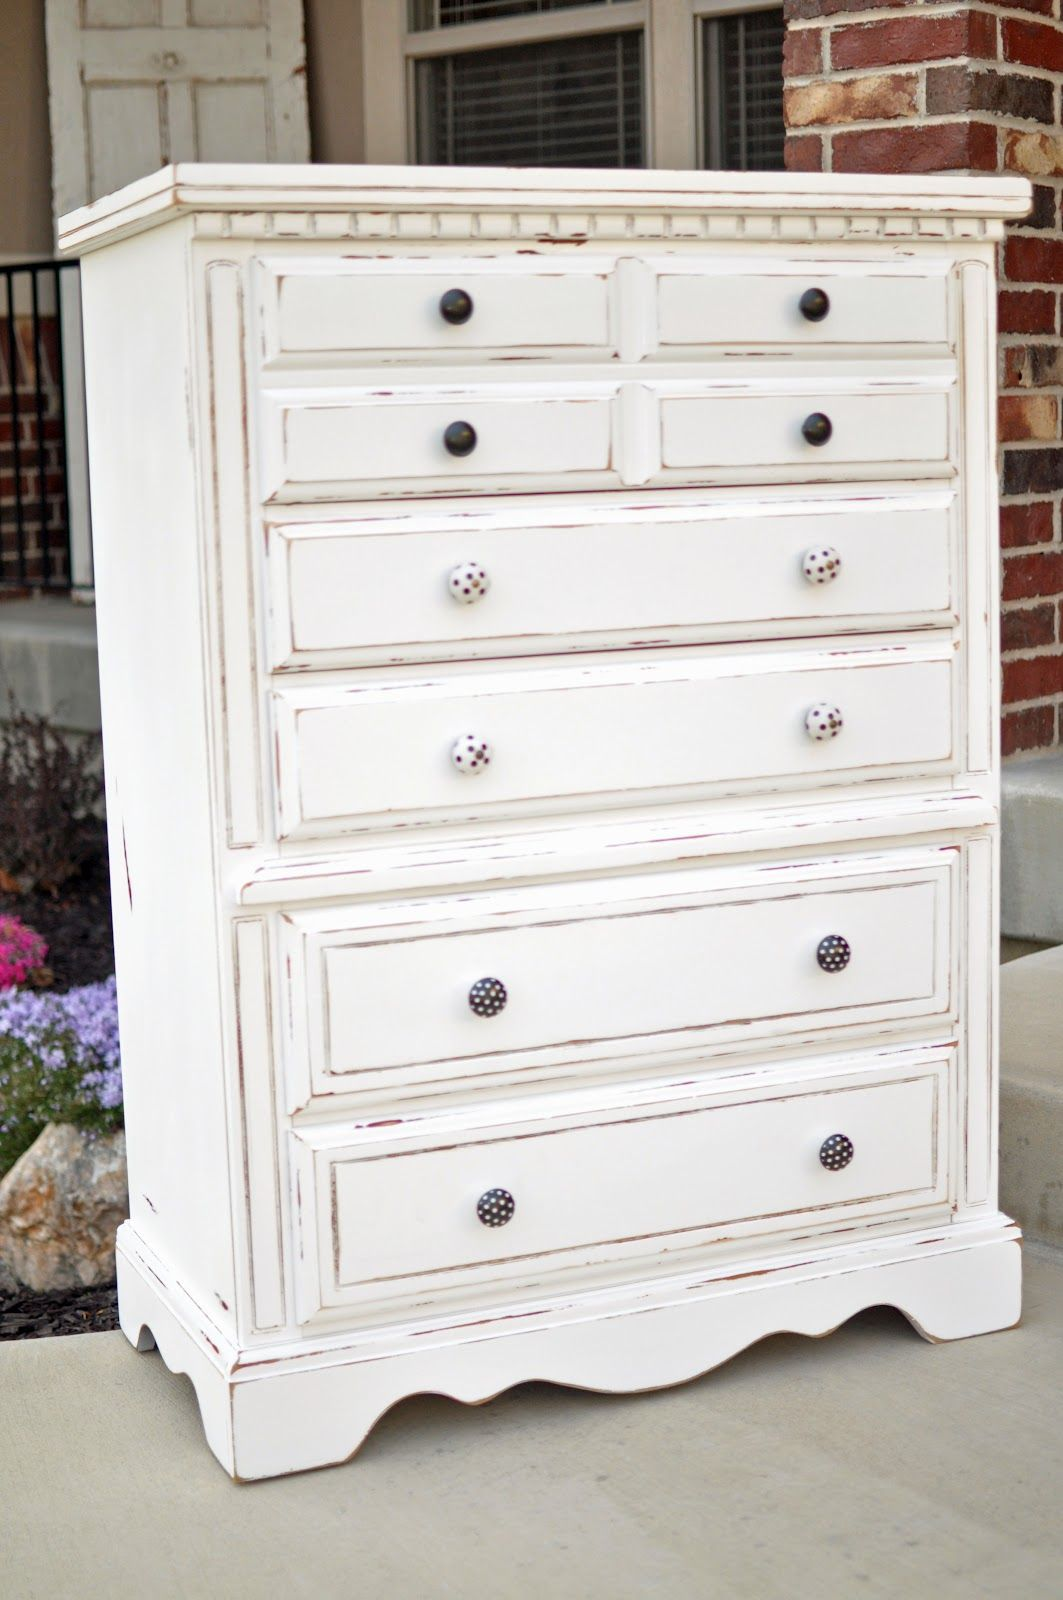 White Refinished Distressed Dresser The Best Of Cleverly Crafty